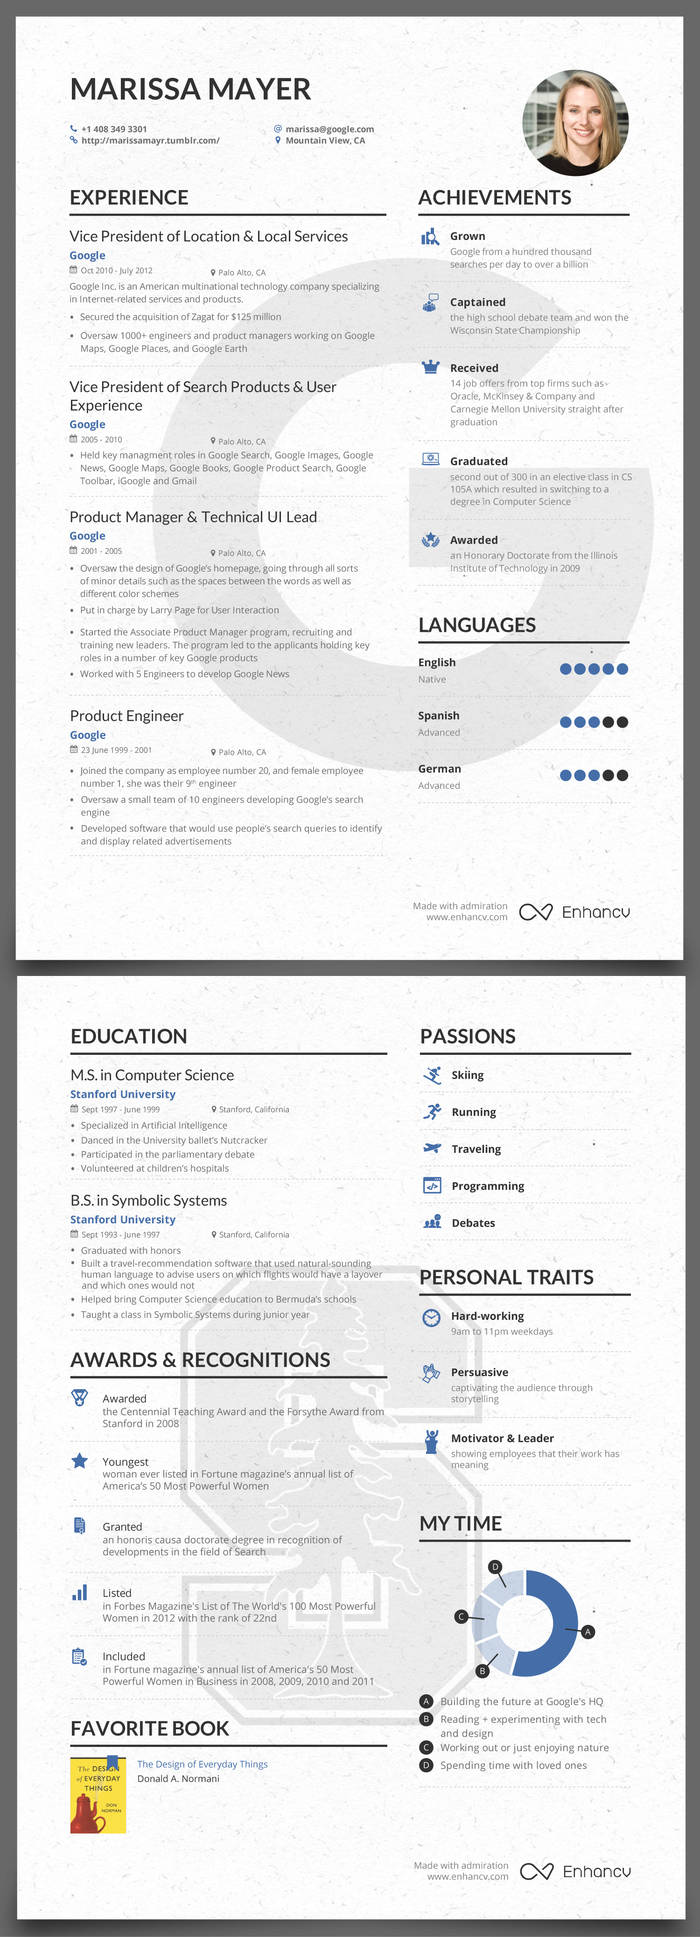 Resume Resumes By Marissa marissa mayers cv tips and tricks mayer infographic